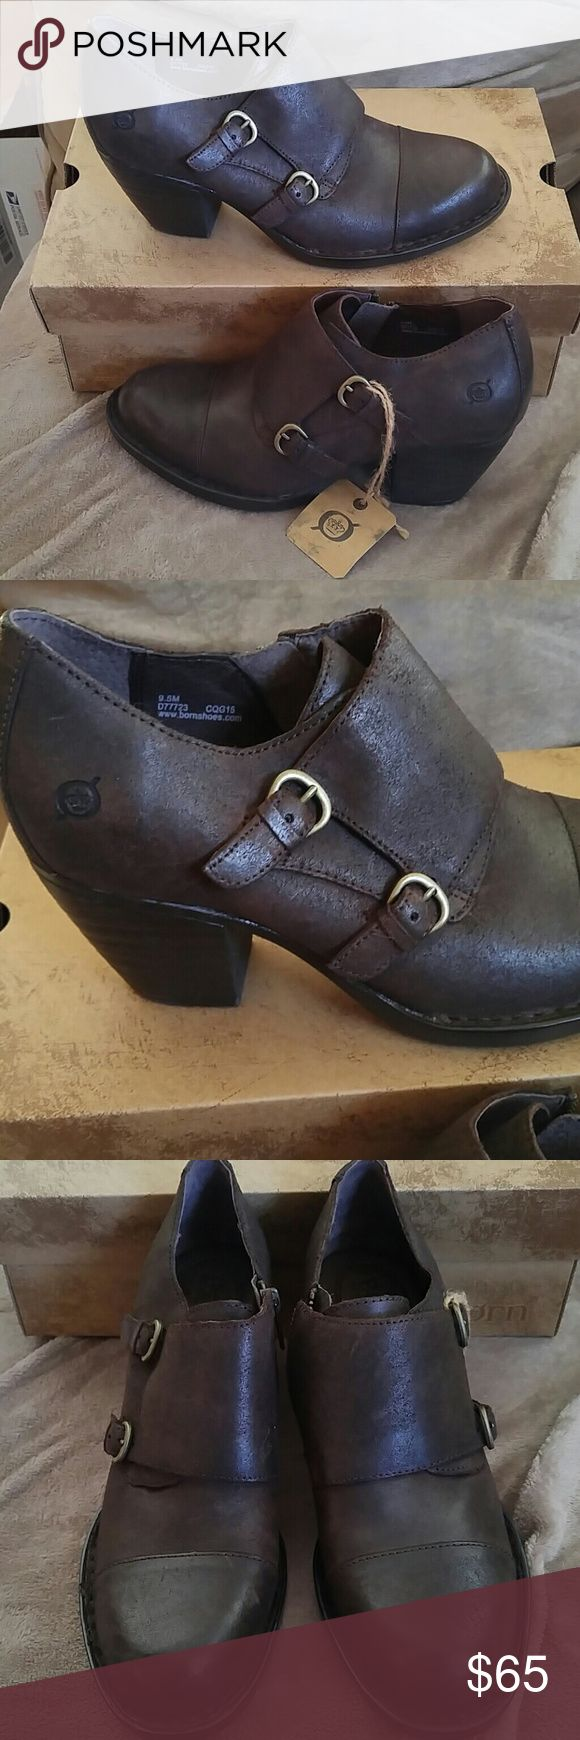 Born boots nwt Model castagno oiled suede zip side stacked heel Dark Brown 3 in heel Born Shoes Ankle Boots & Booties